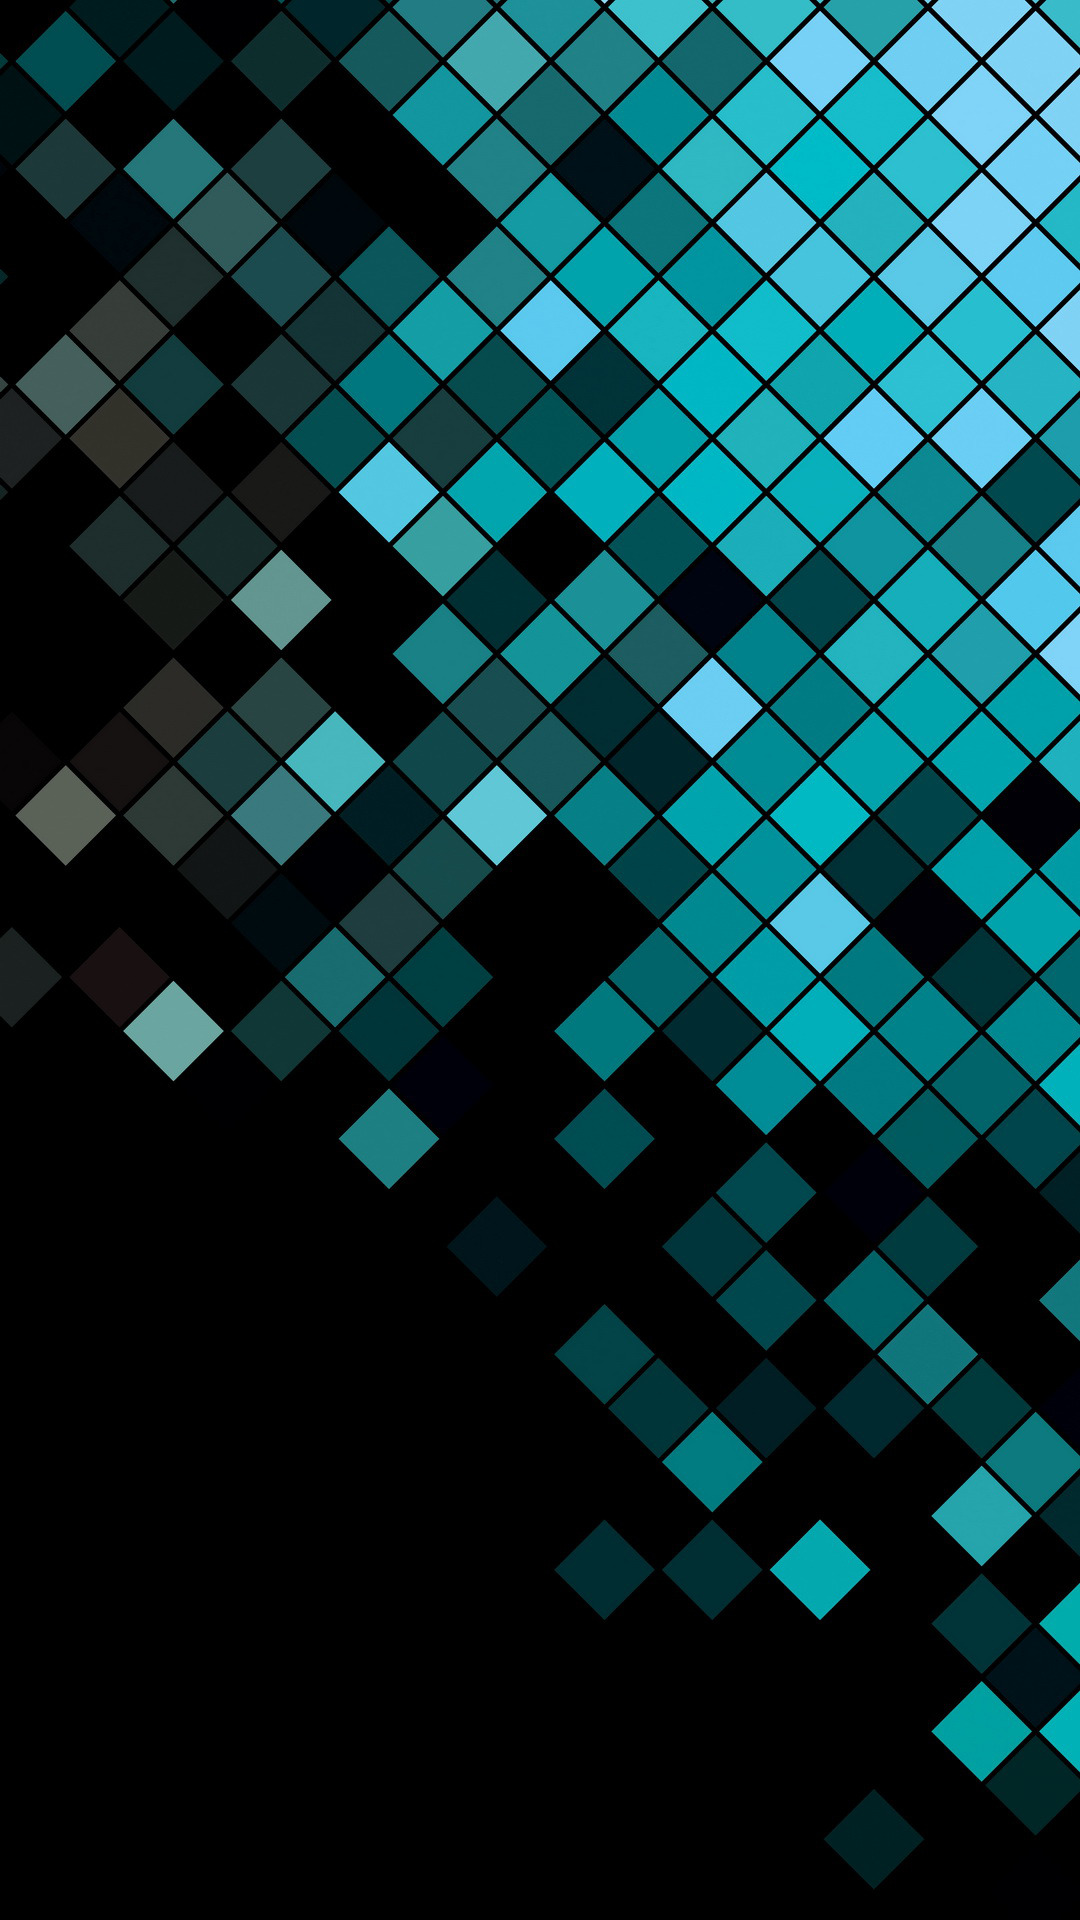 mosaic   iPhone 6 plus High Resolution wallpapers 1080x1920